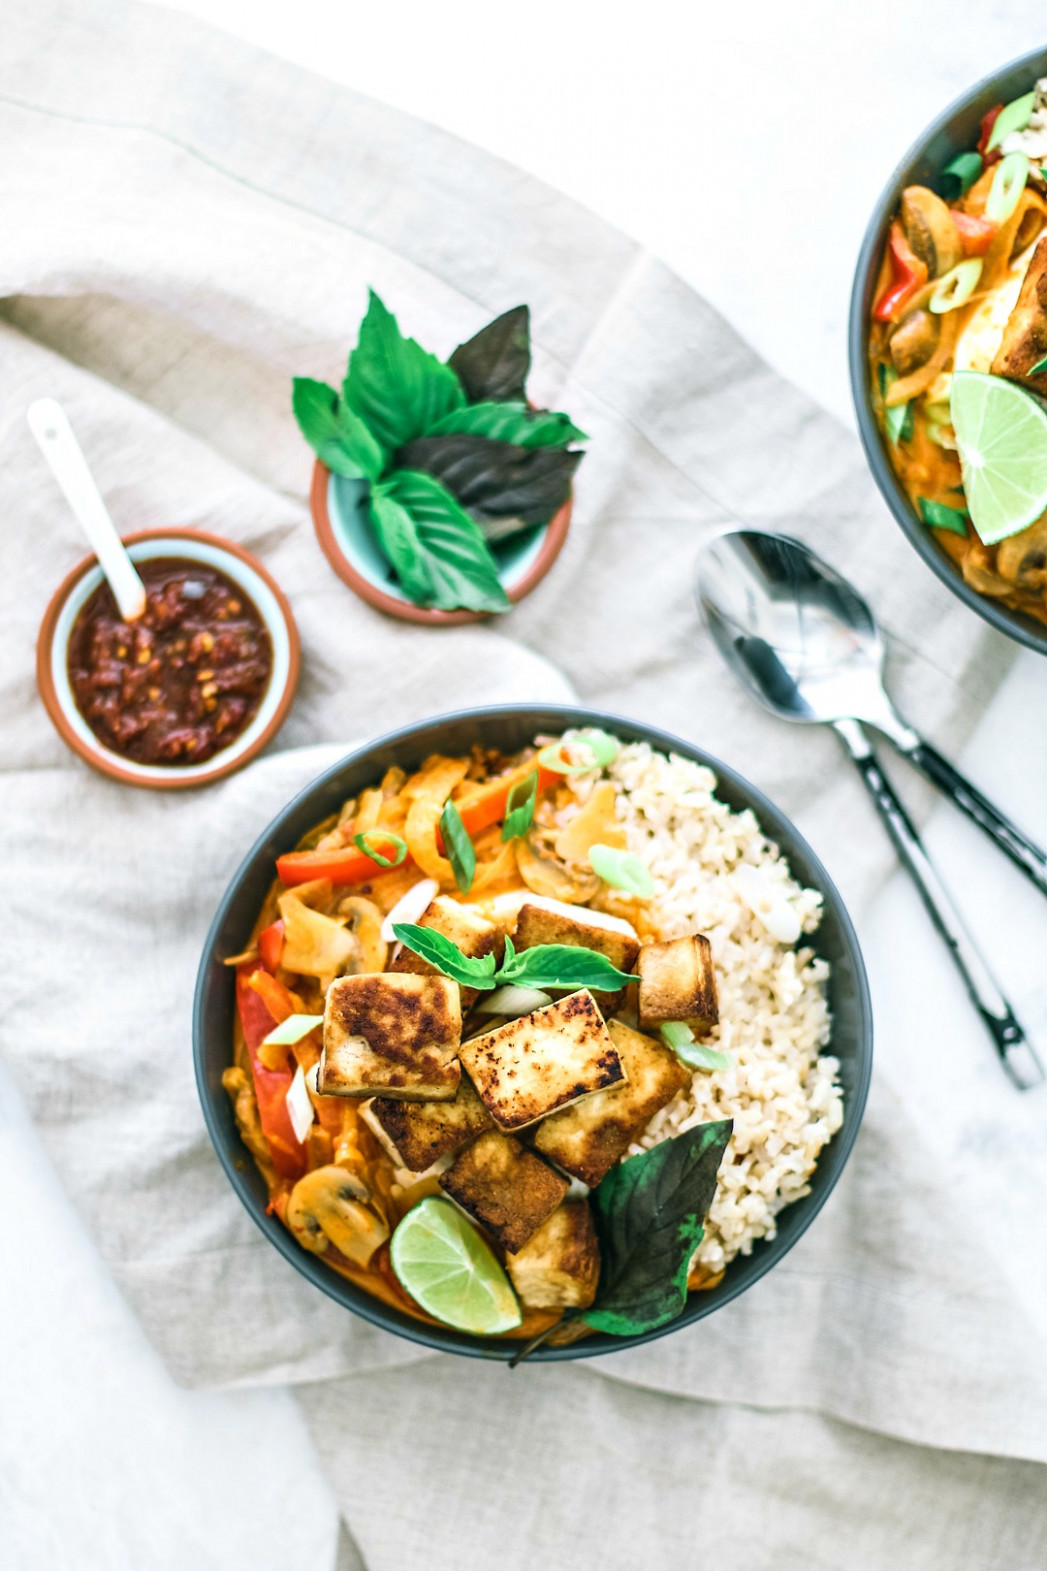 Easy Thai Red Curry With Tofu - recipes for thai food